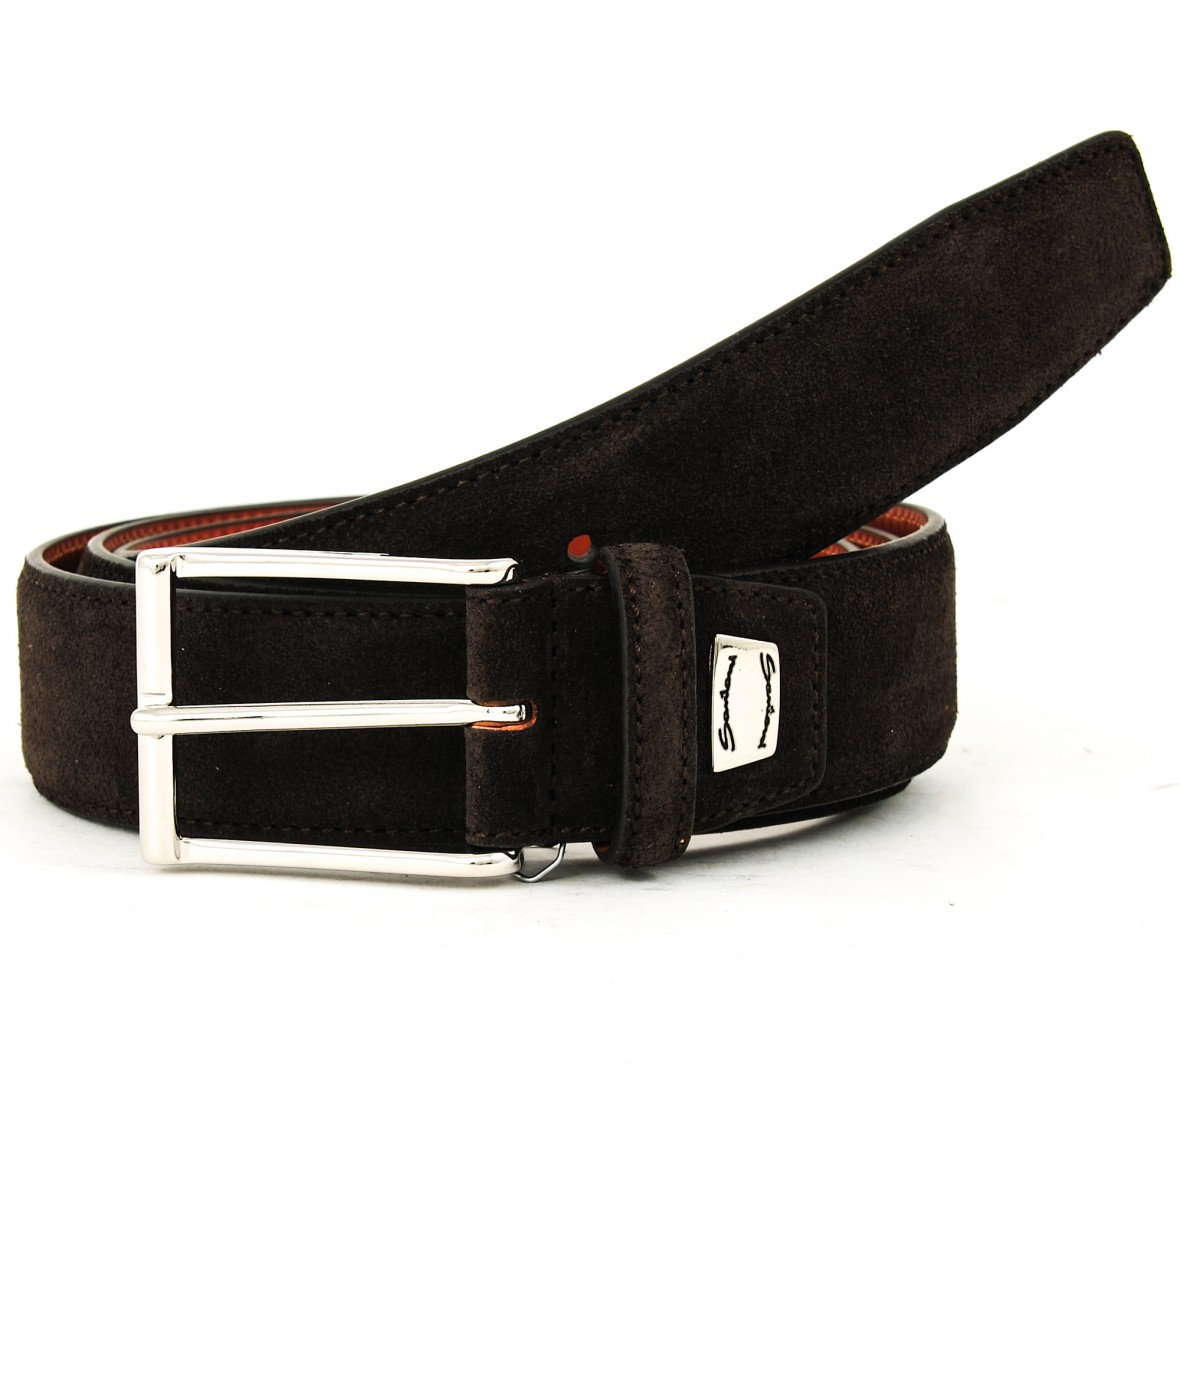 Santoni Belt Dark Brown Suede (31733)